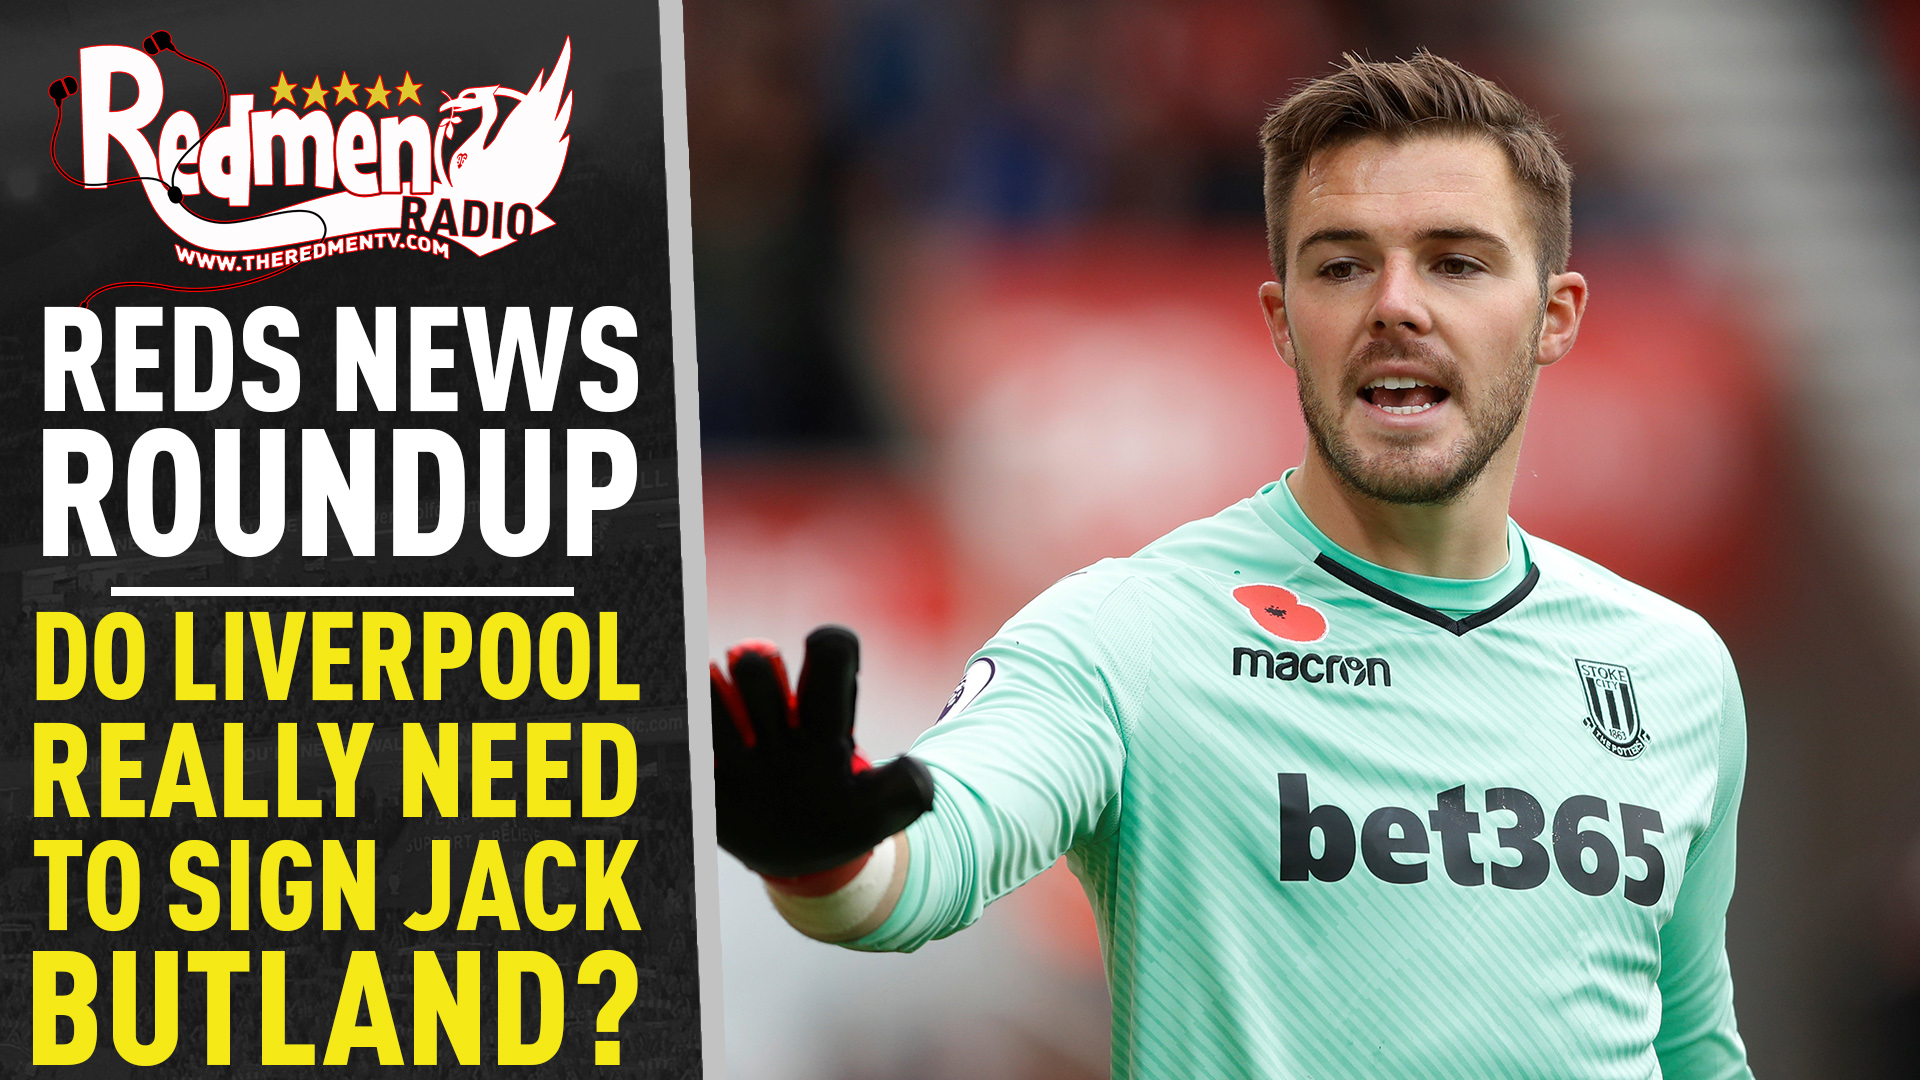 🎧🏆 Do Liverpool Need to Sign Jack Butland? | Reds News Roundup Podcast